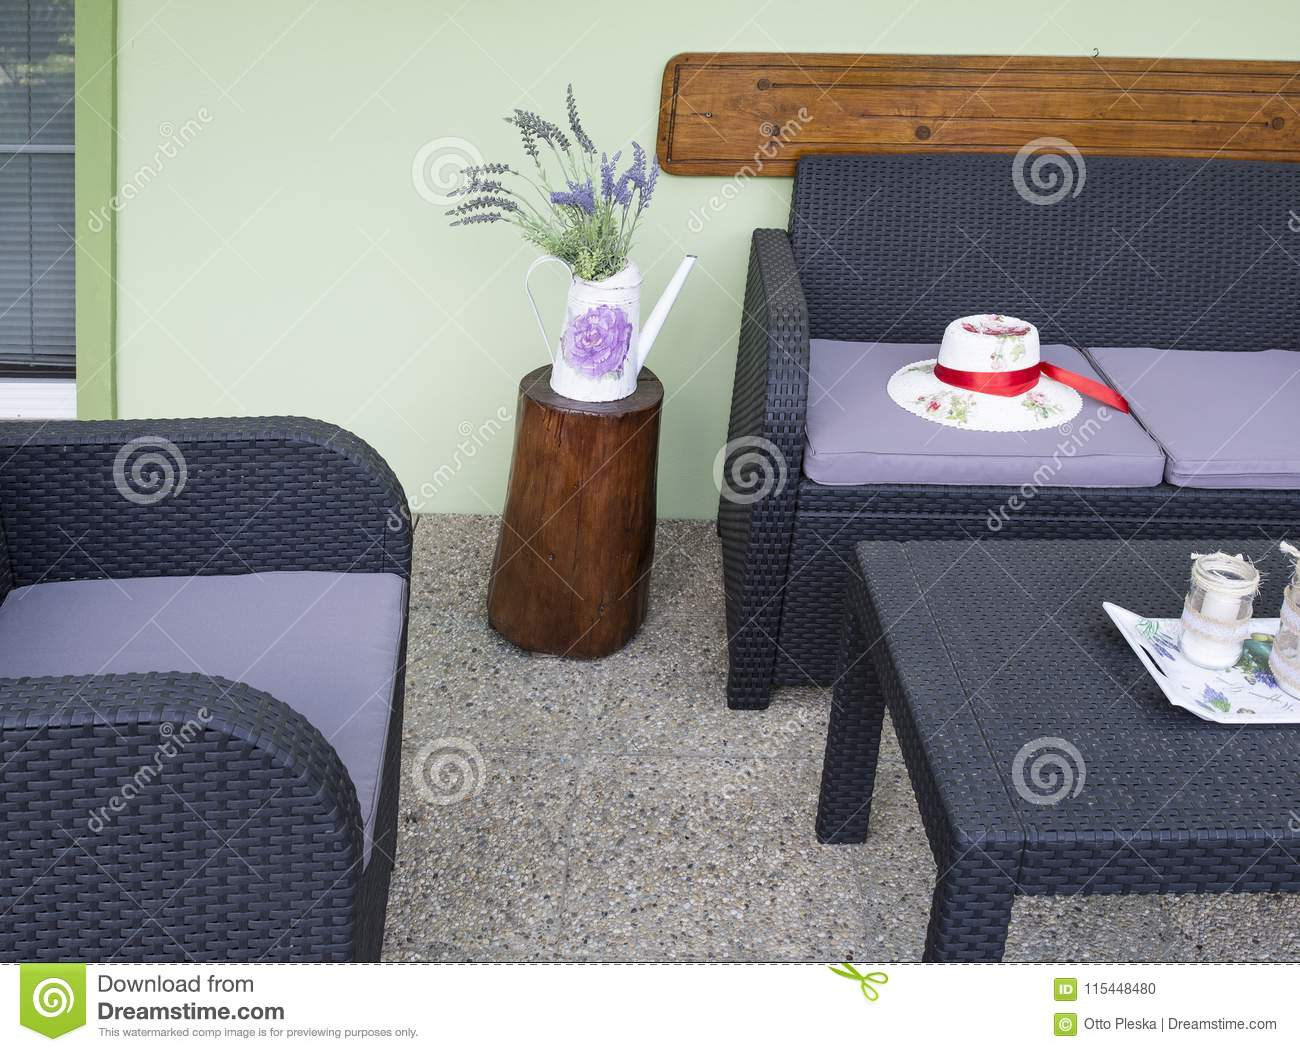 Plastic rattan patio furniture with rustic decoration